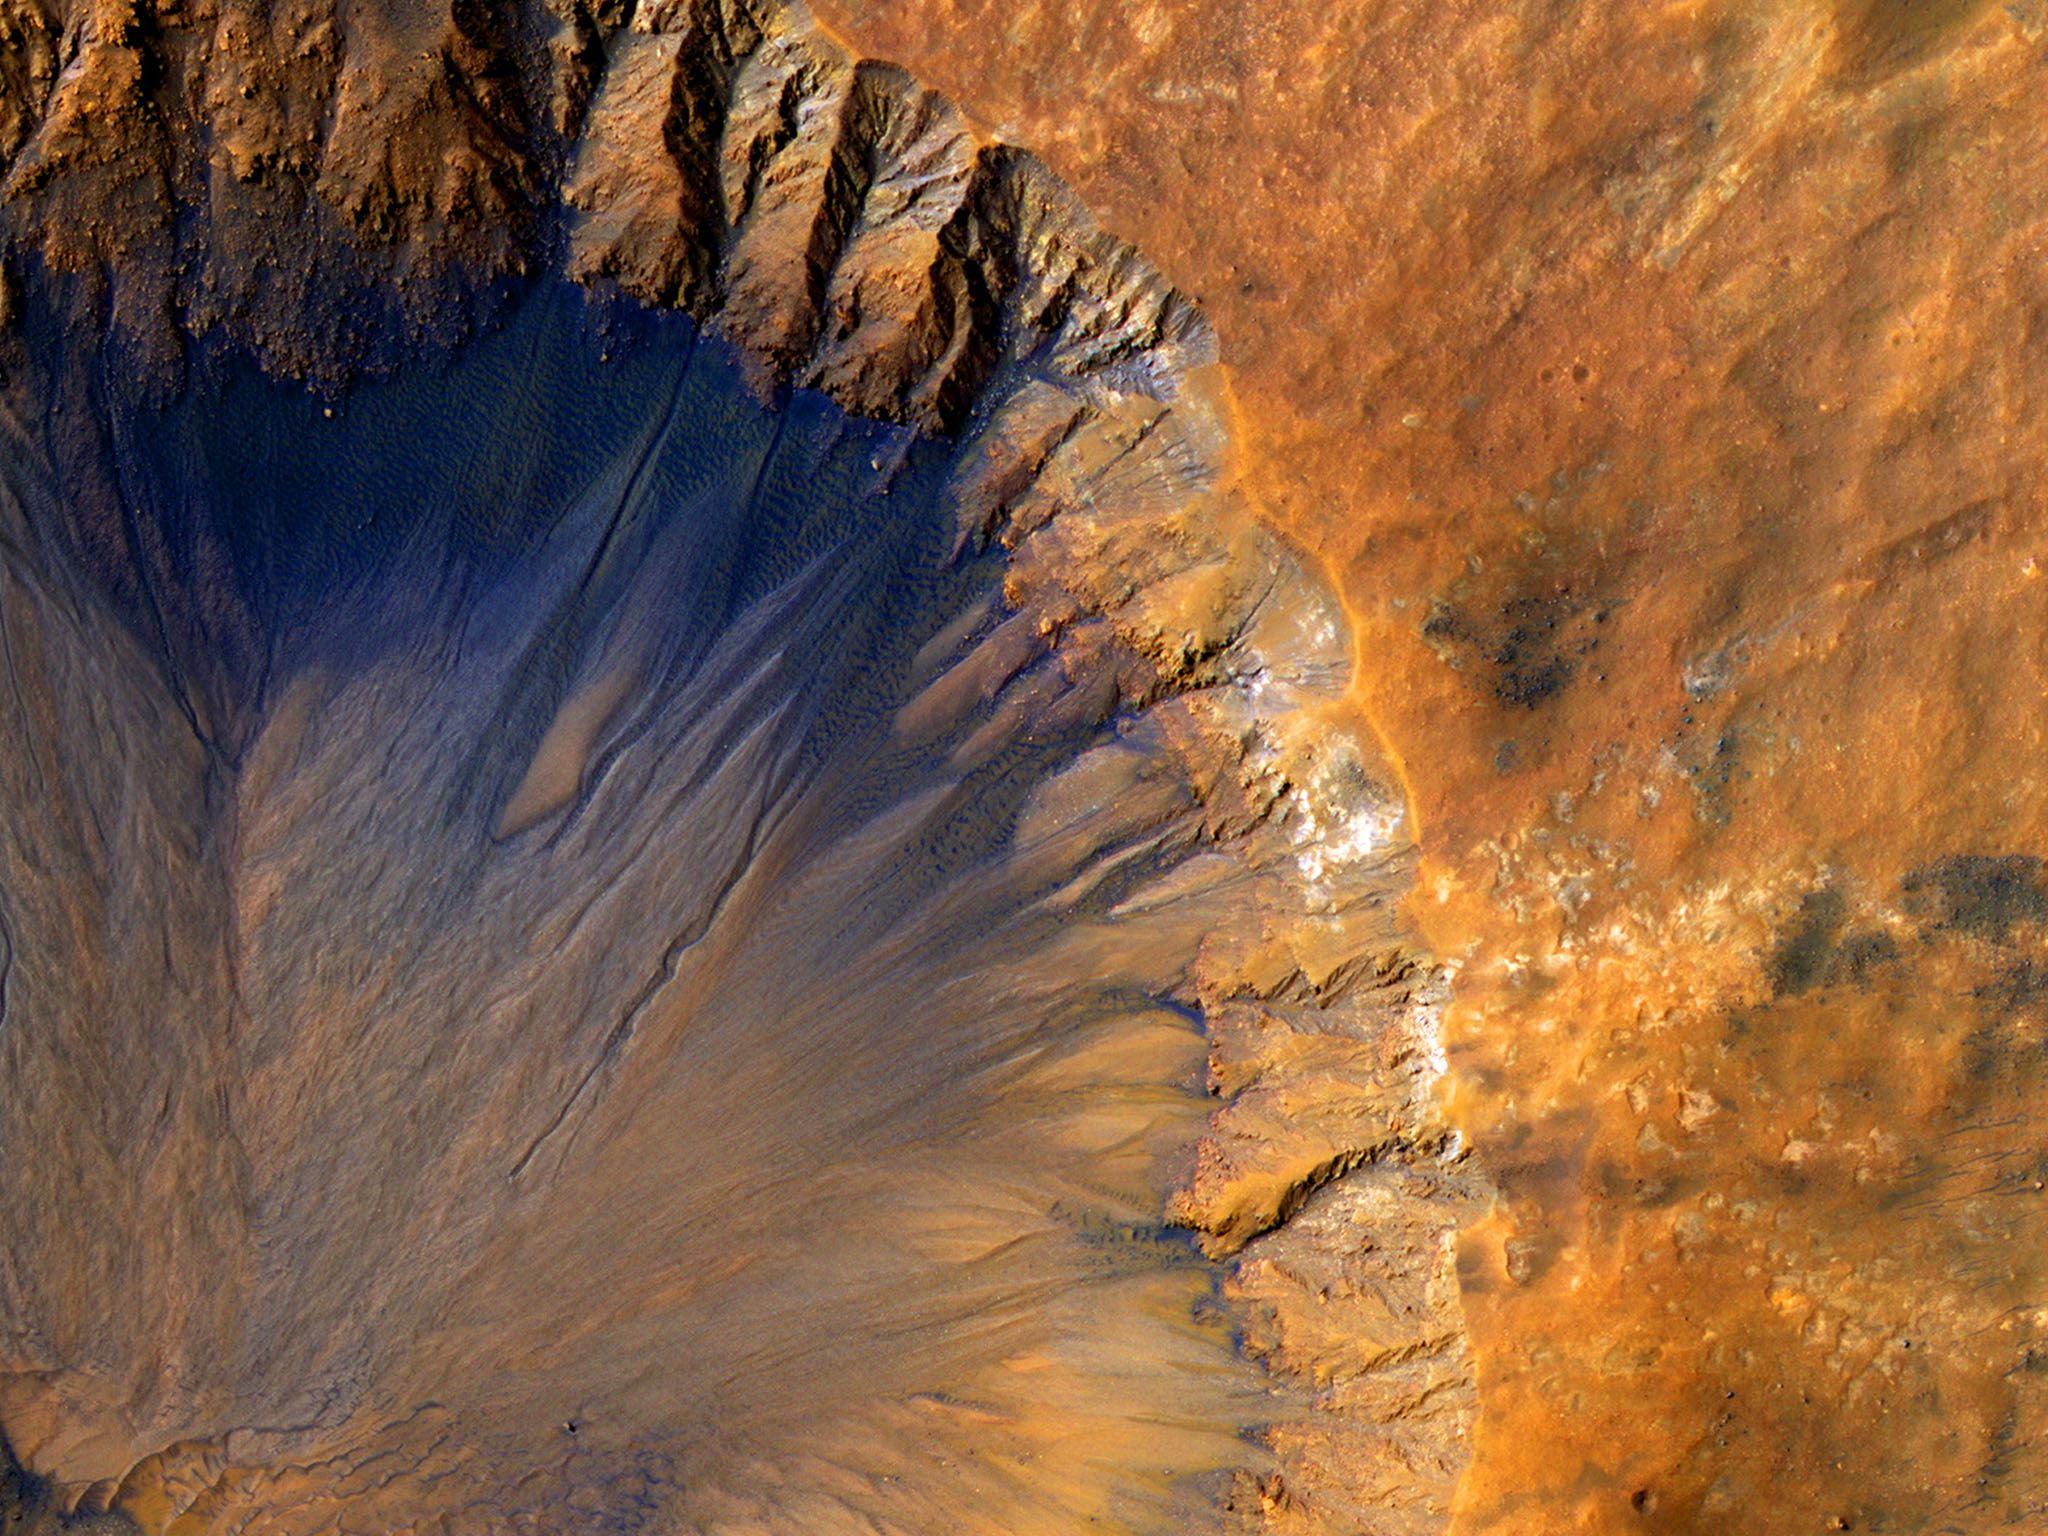 Fresh Crater Near Sirenum Fossae Region of Mars. The High Resolution Imaging Science Experiment... [Photo of the day - December 2016]